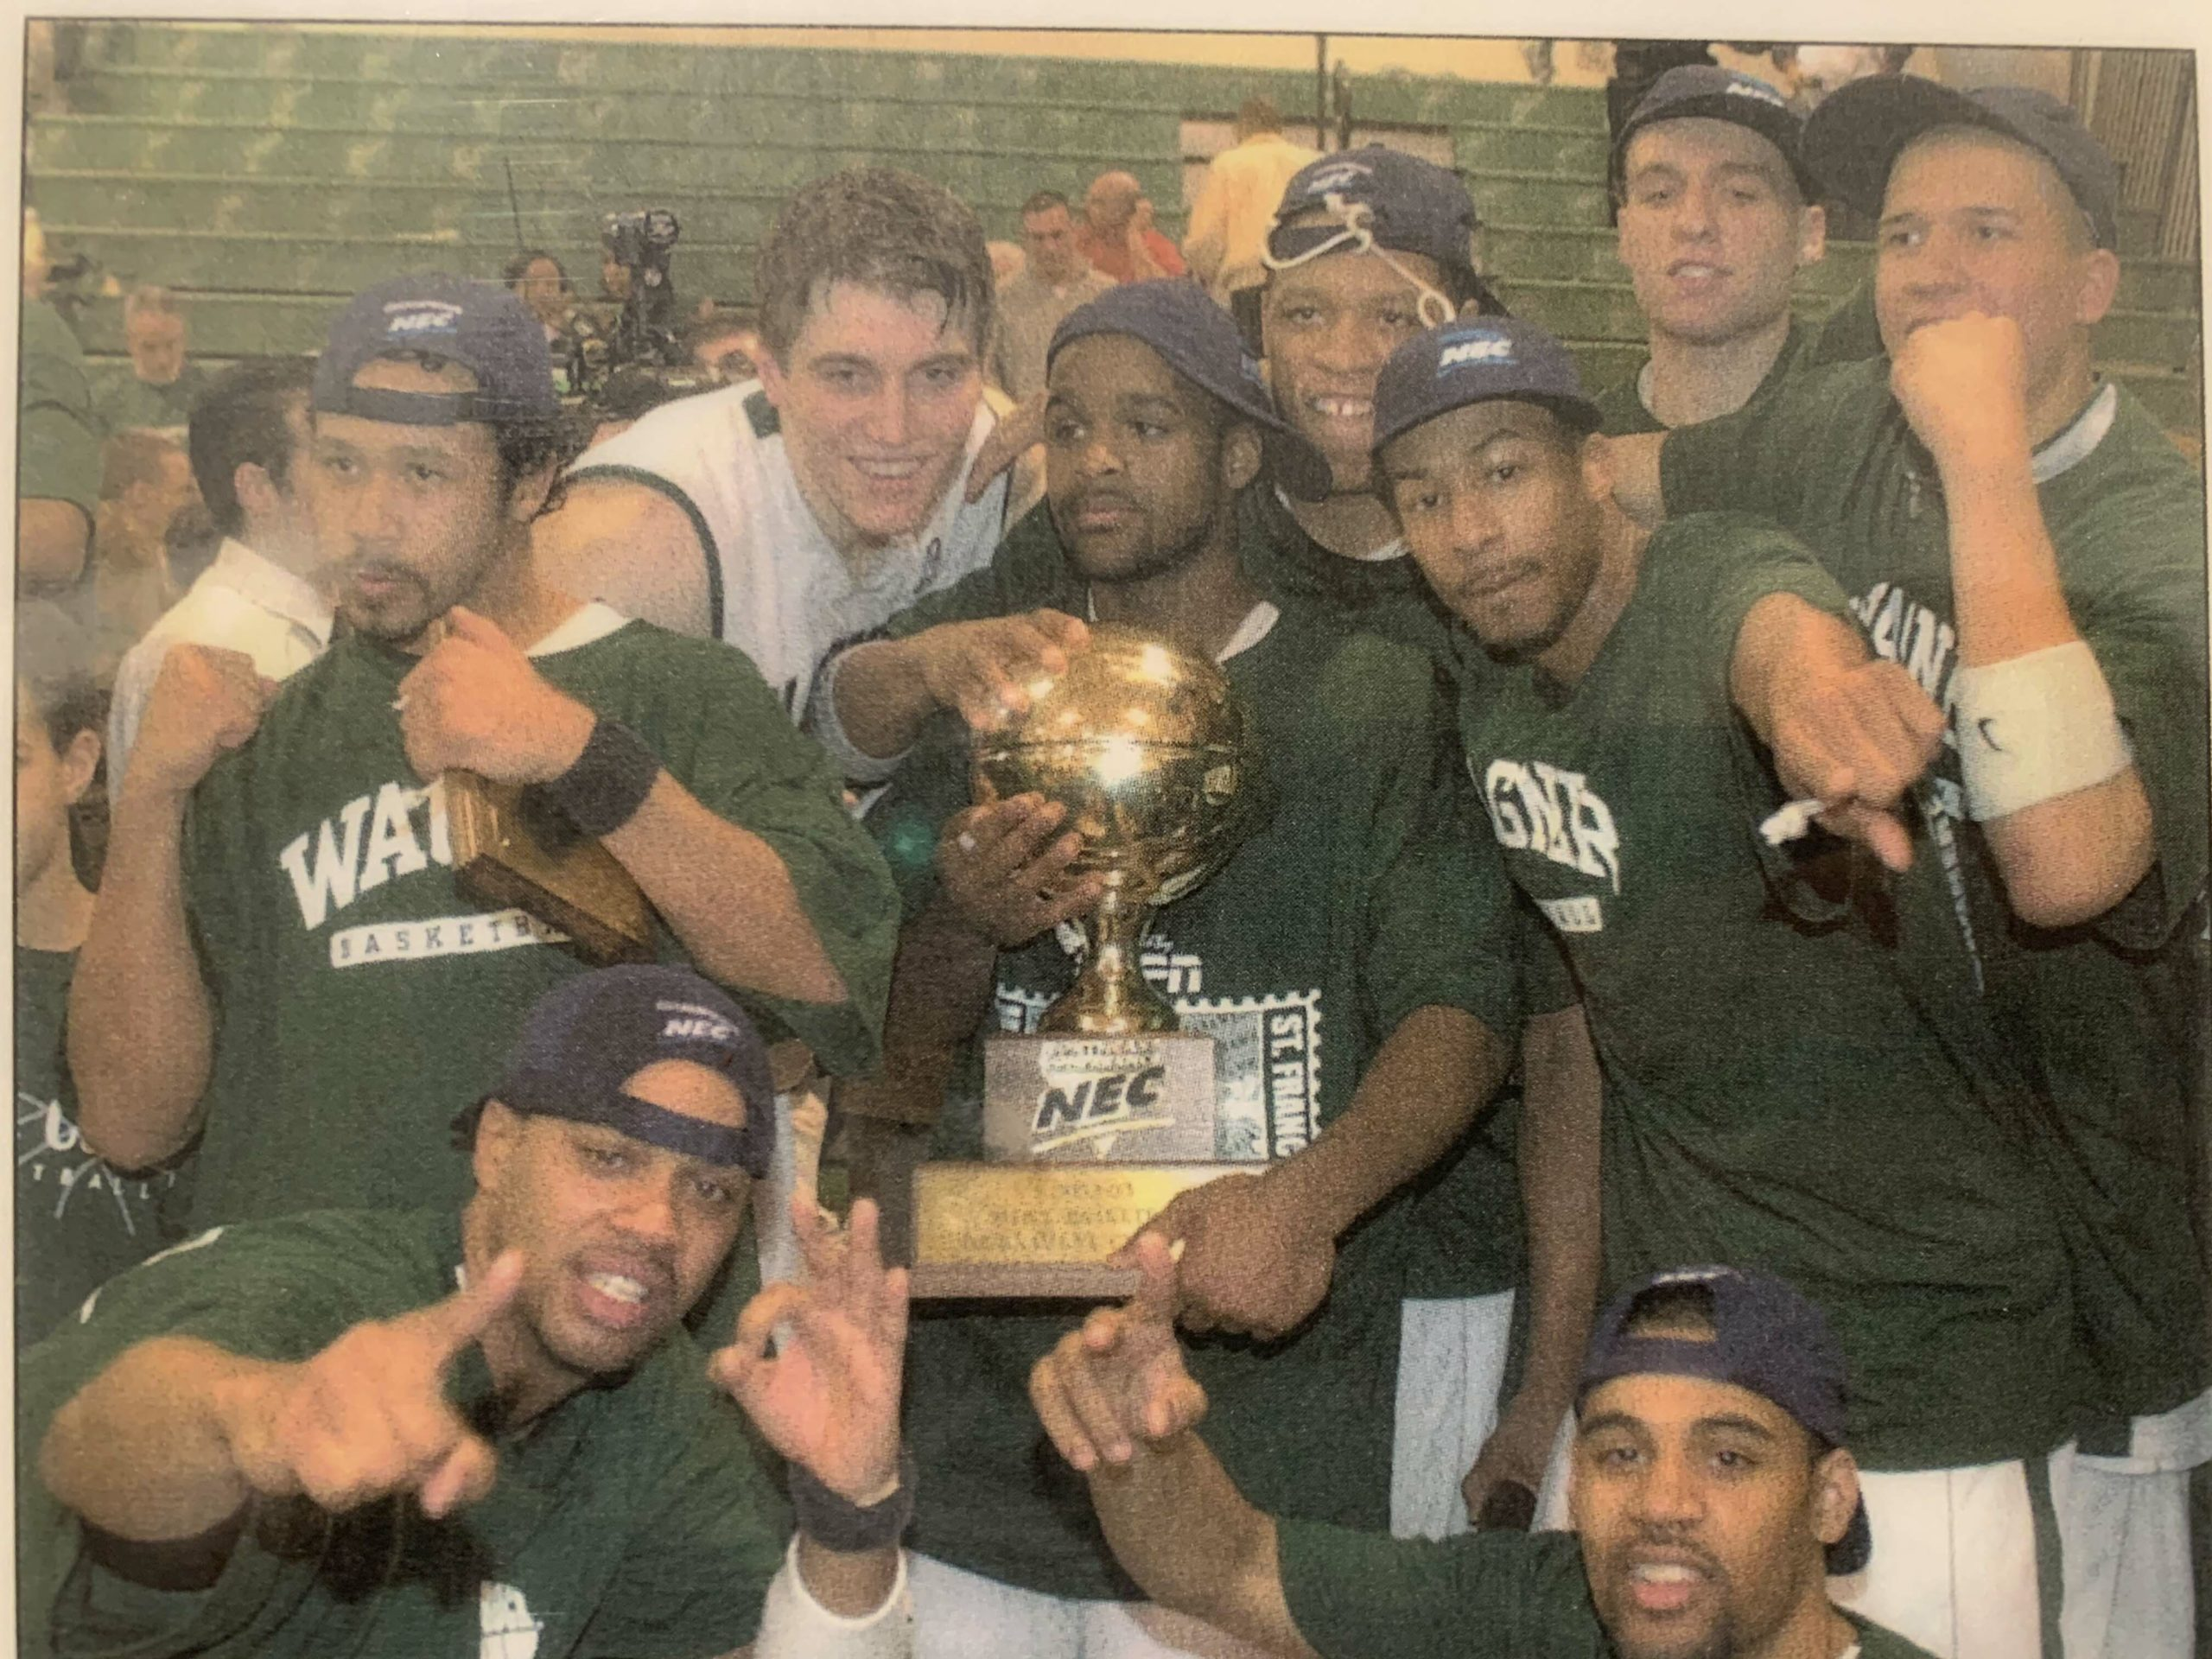 Courtney Pritchard ,center, holding trophy with his Wagner College teammates after winning the NEC title, which catapulted the team to the NCAA tournament in his junior year.